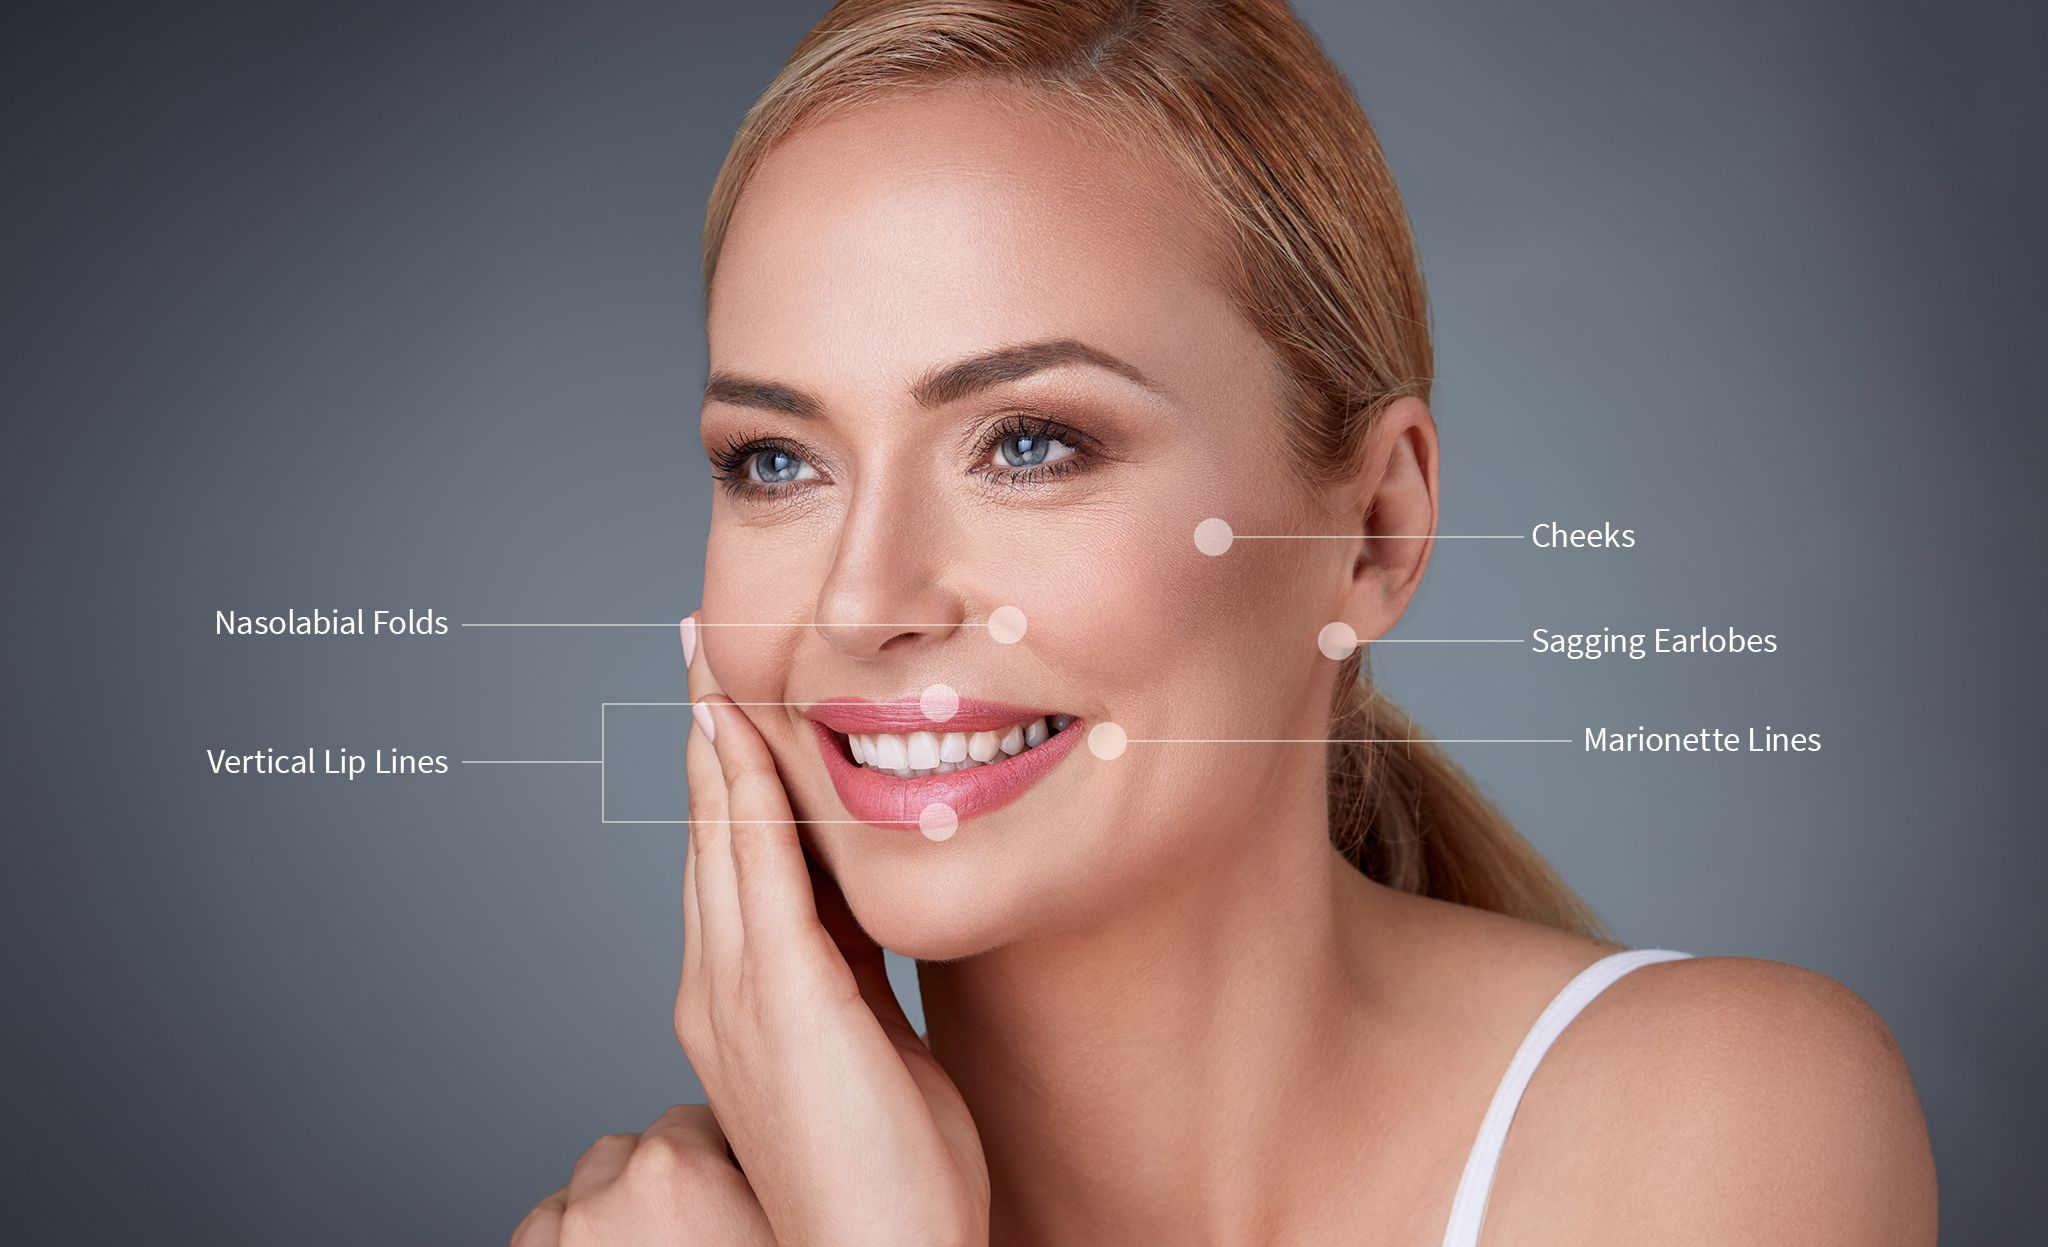 Woman smiling while tags identify where wrinkles occur on the face